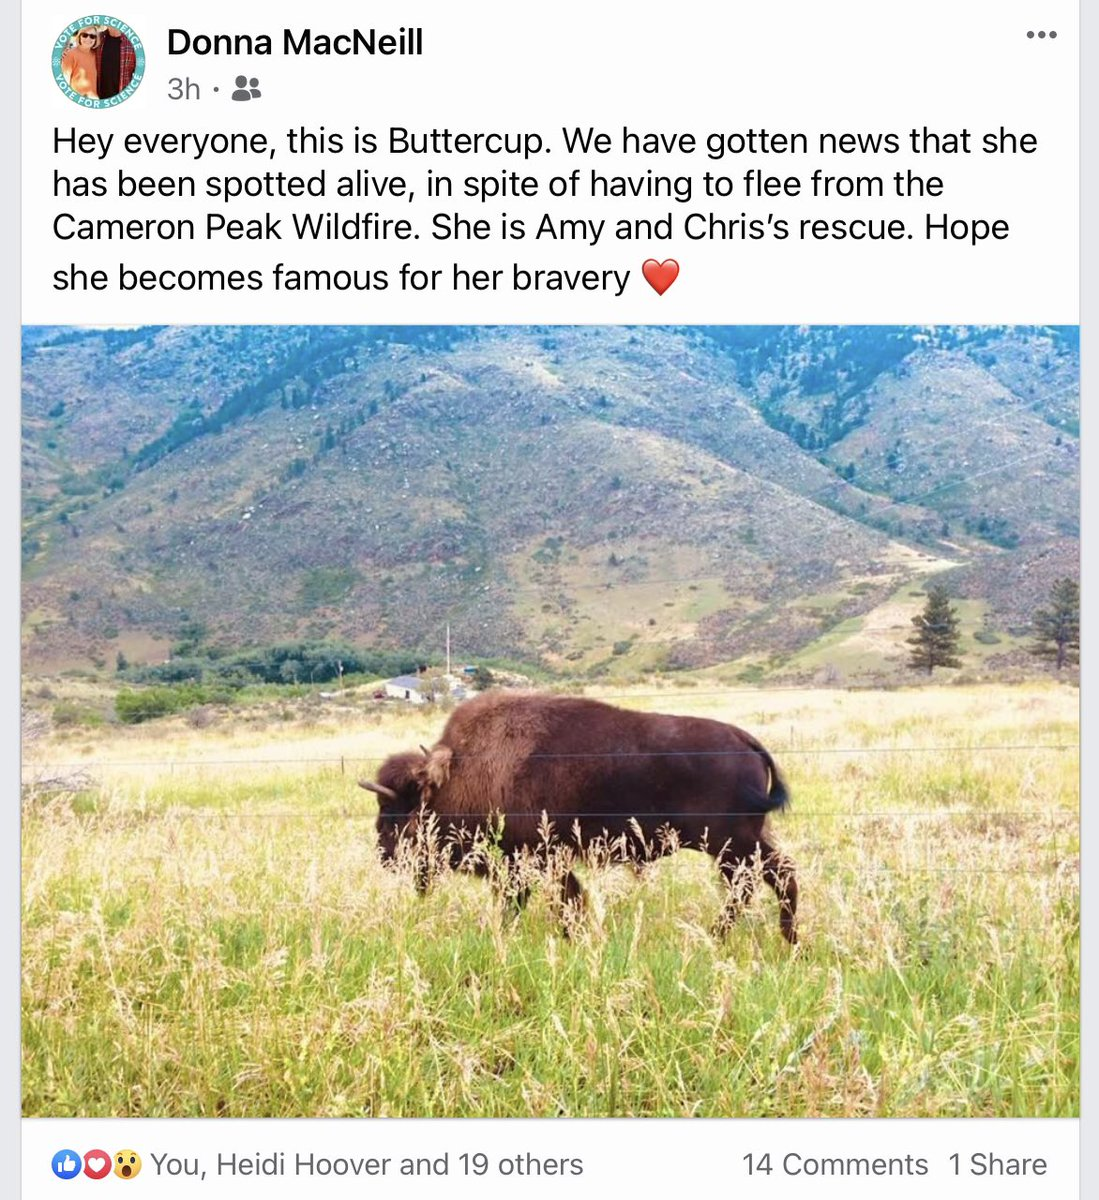 @anamariecox This is Buttercup, rescue bison who survived the Colorado fires. https://t.co/wOBWiJSYgH https://t.co/u0N8lr30mI